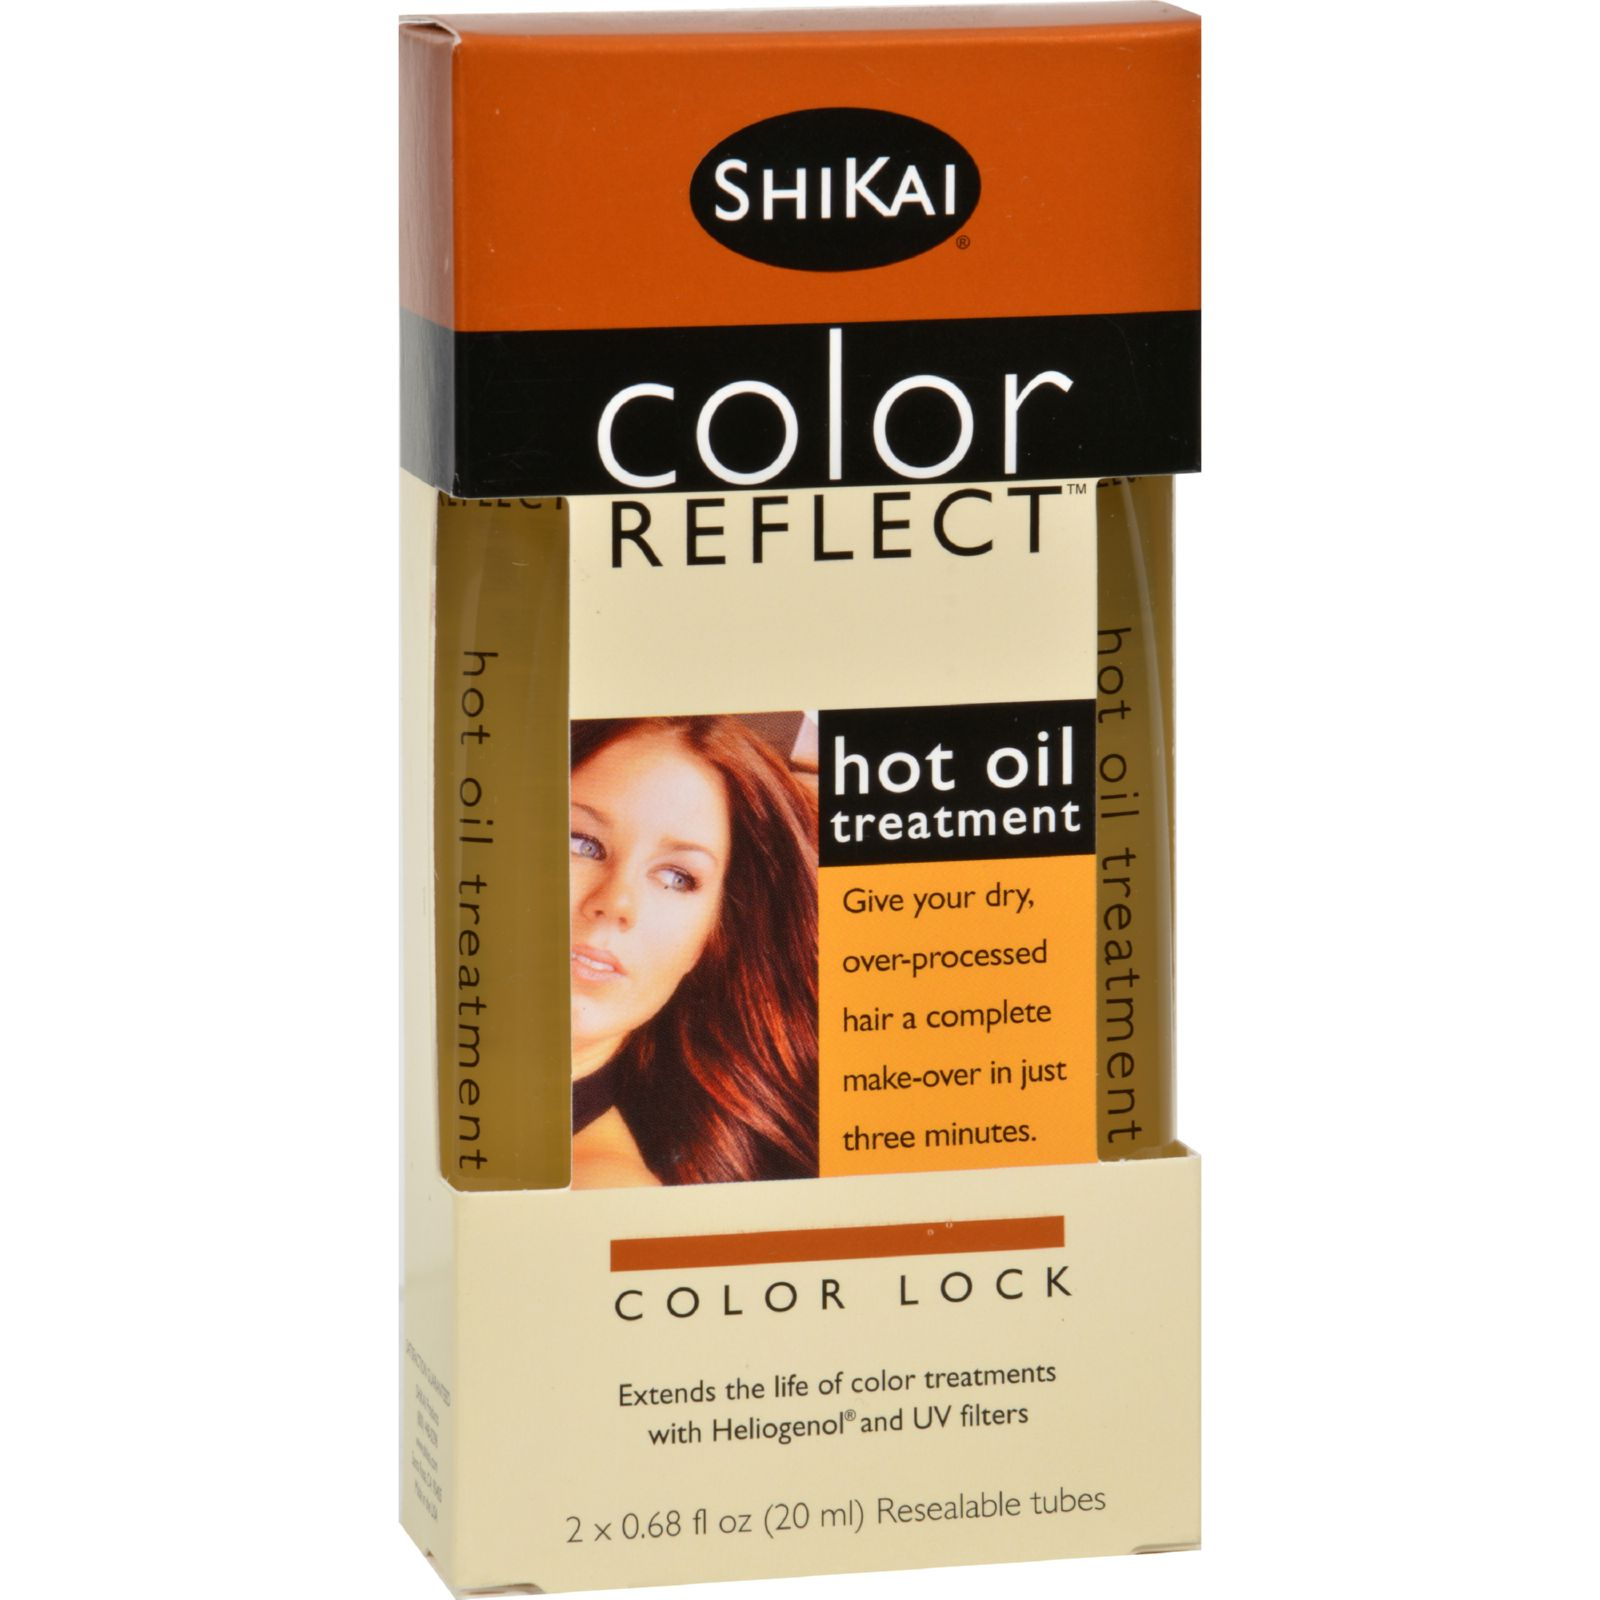 Shikai Color Reflect Hot Oil Treatment - 0.67 Fl Oz